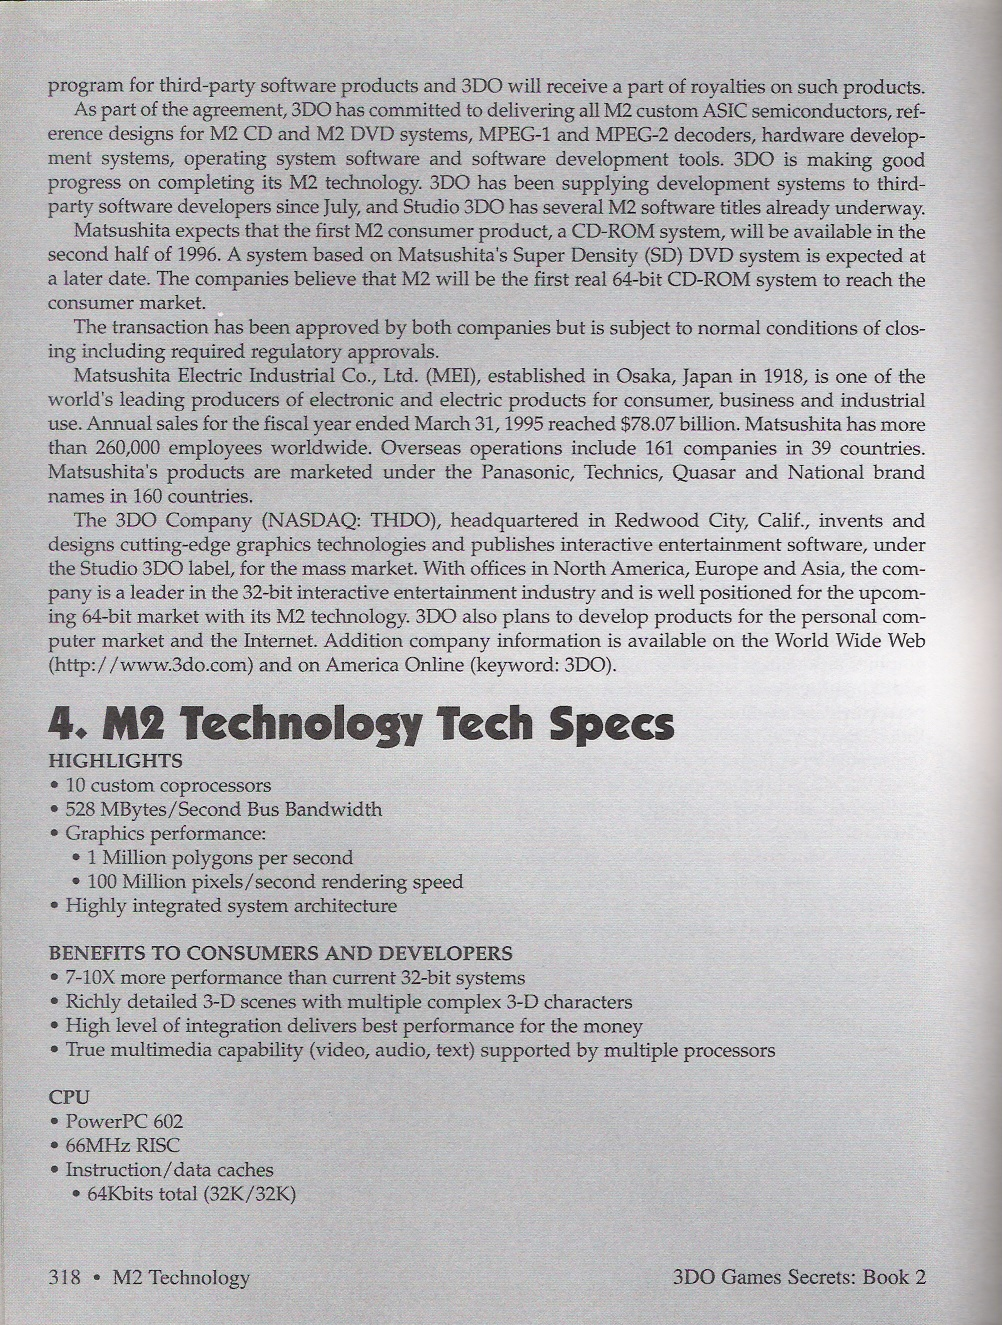 02159_3DO_Book_2_M2_scan0023_122_137lo.jpg